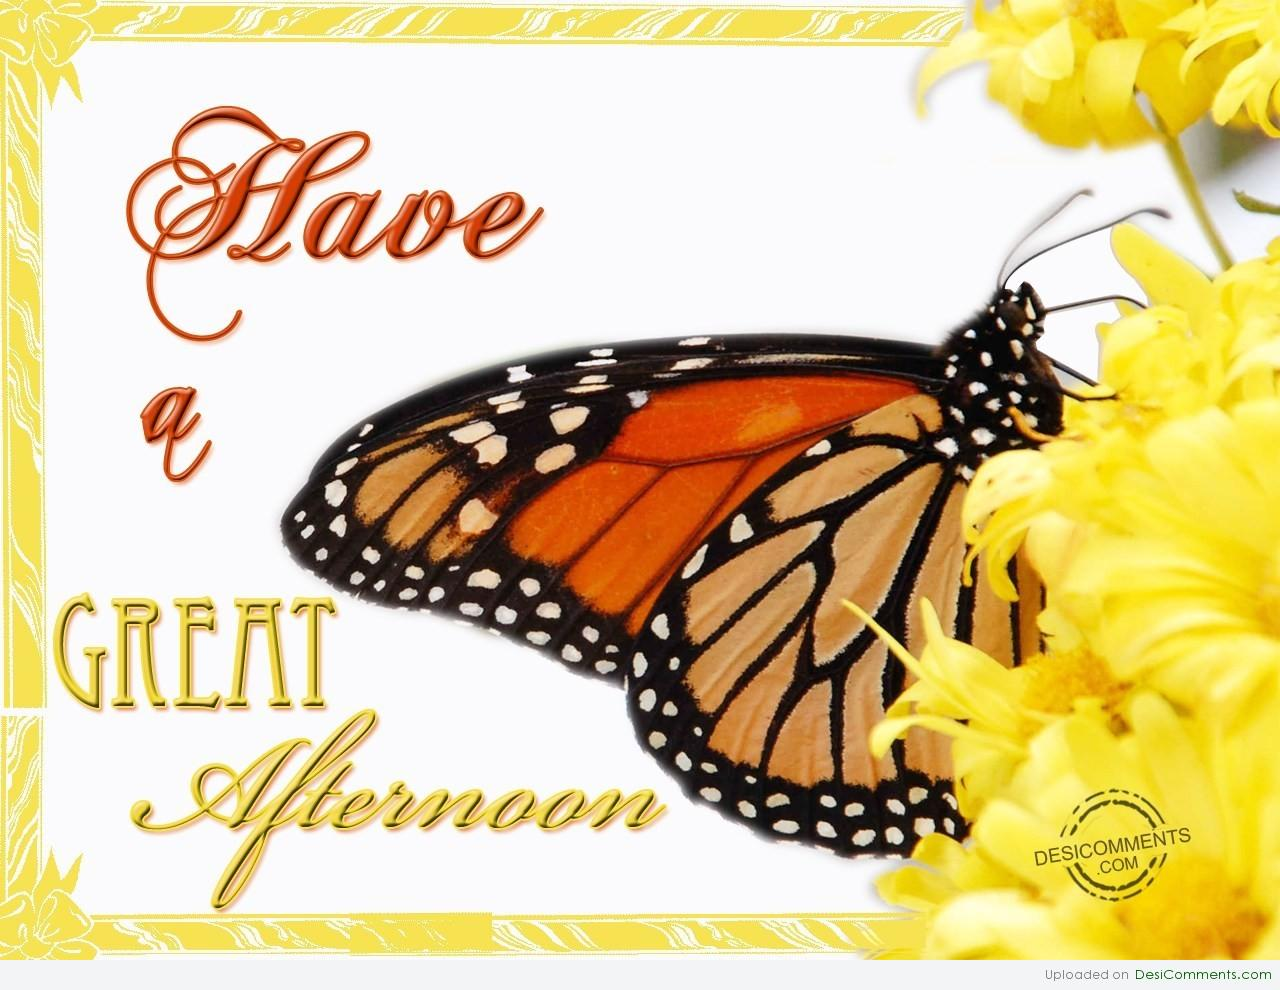 Have A Great Afternoon Desicommentscom